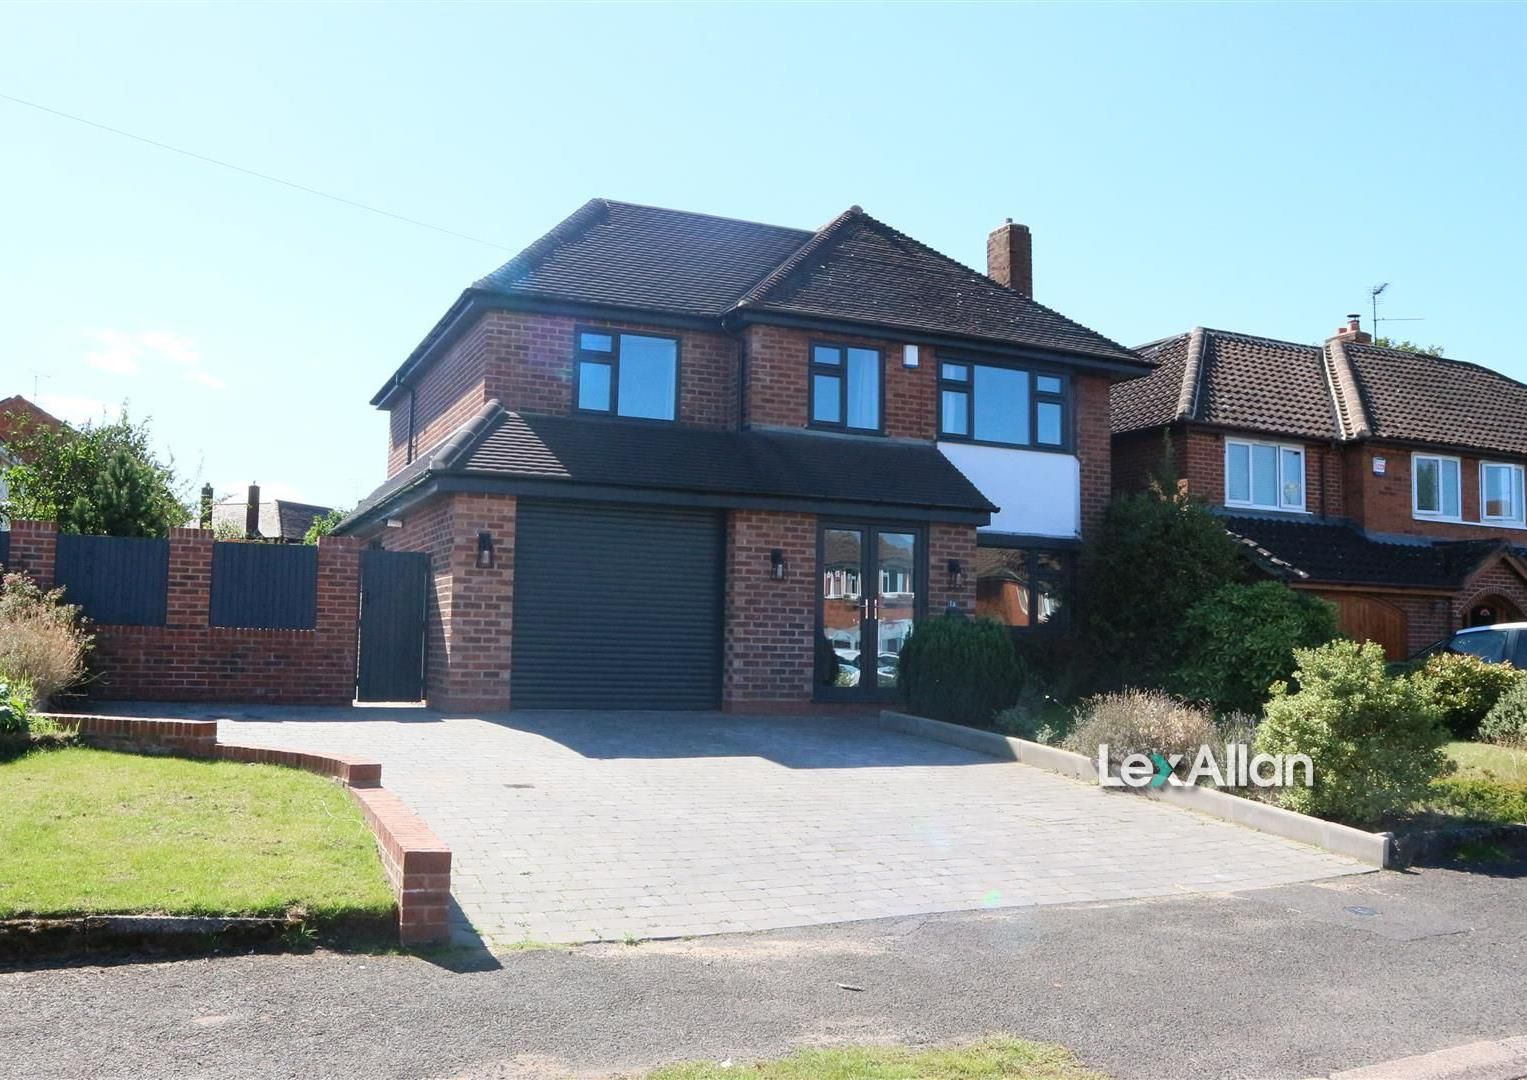 4 bed detached for sale in Norton - Property Image 1